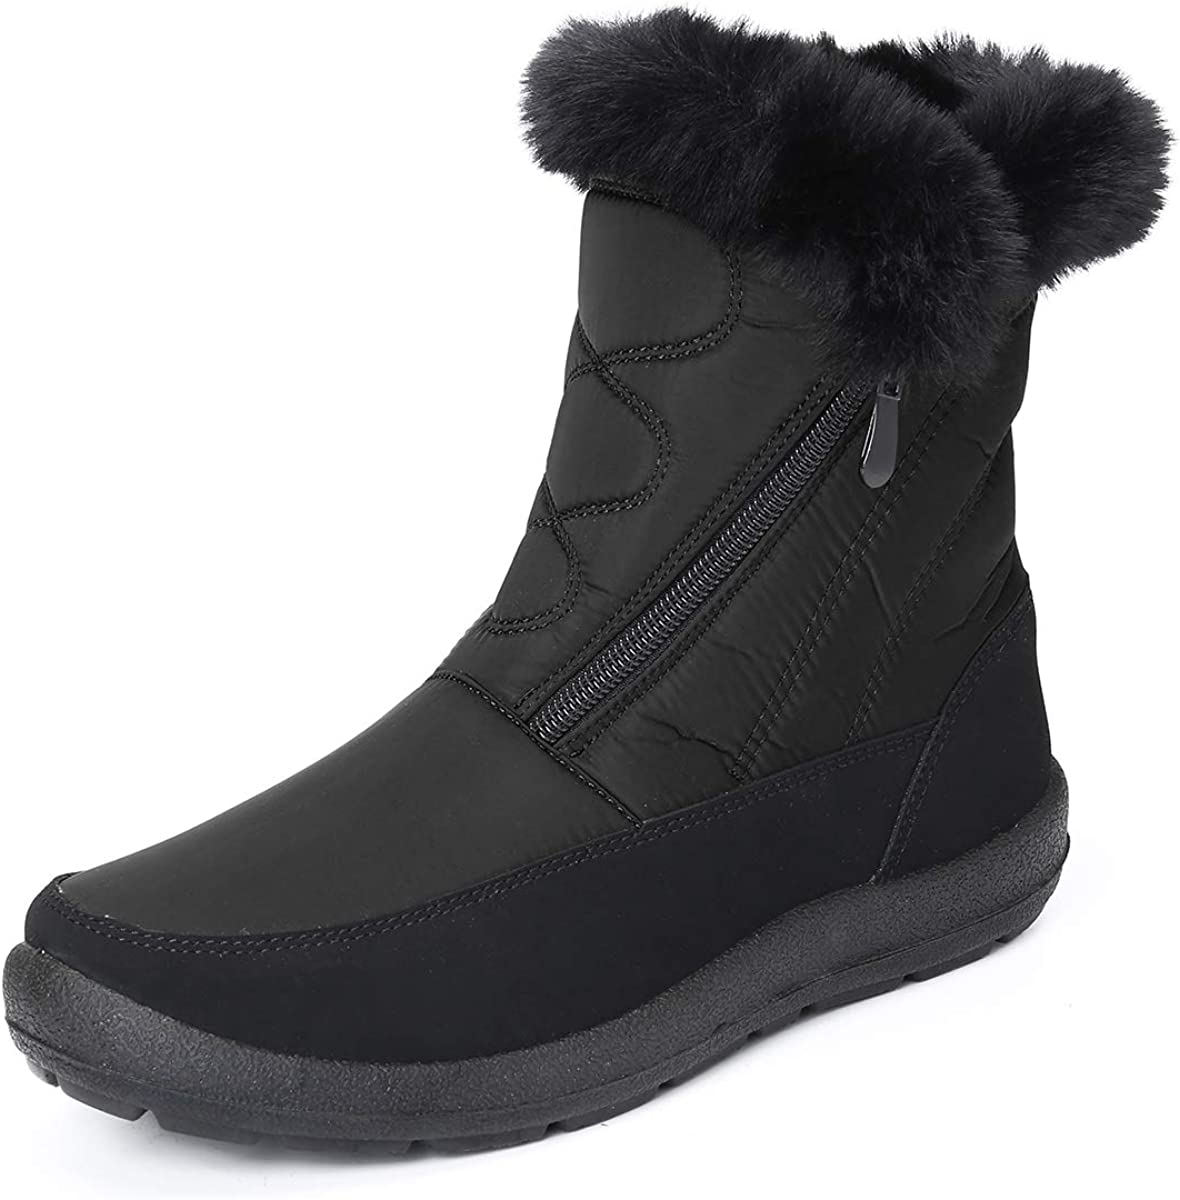 Camfosy Snow Boots for Women Men, Winter Fur Lined Warm Boots Outdoor Comfort Waterproof Ankle Booties Side Zipper Shoes